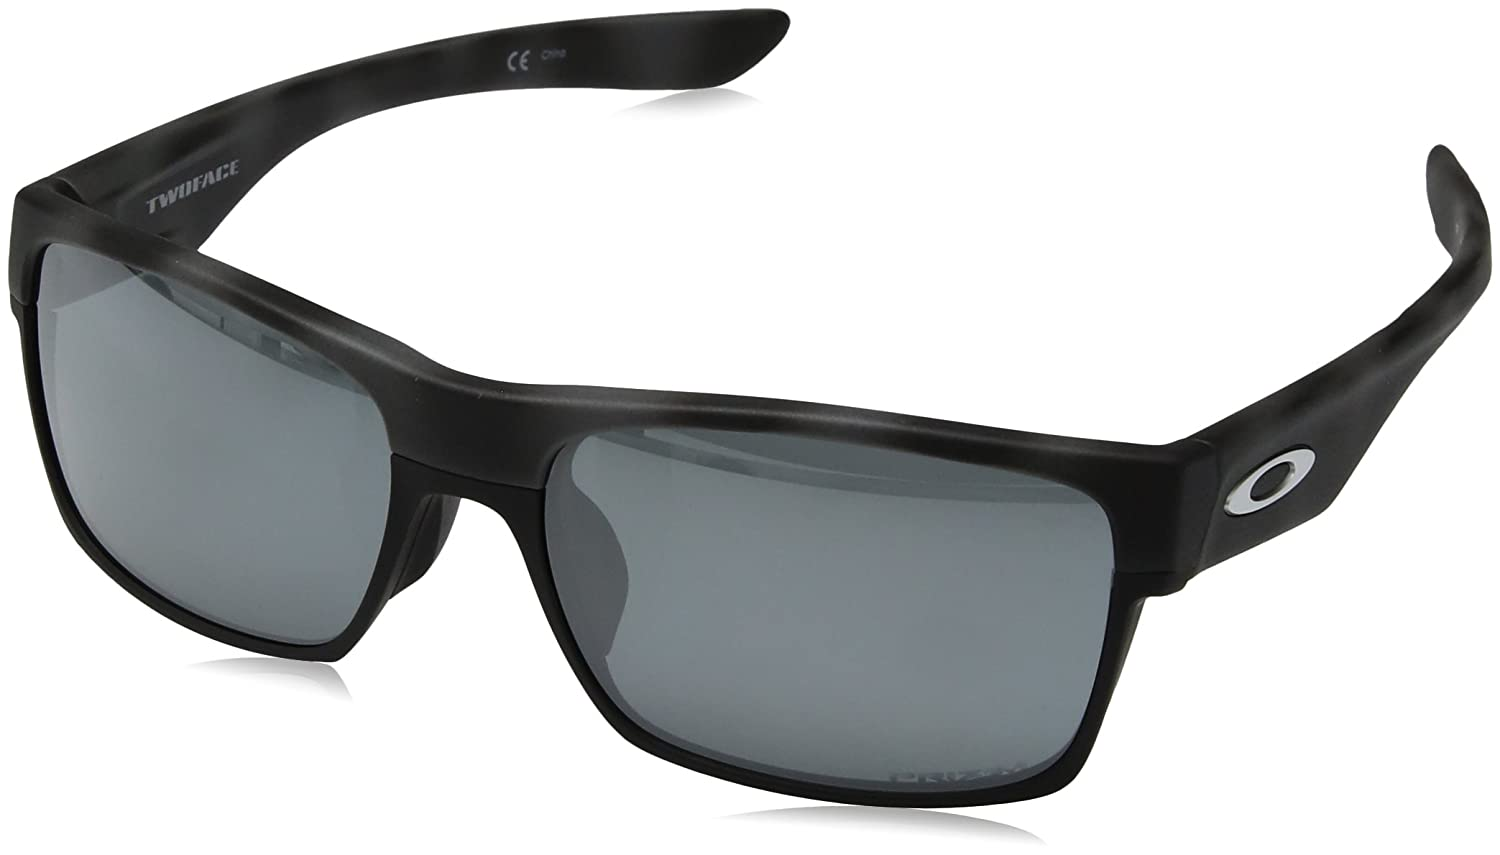 73964acbb7 Amazon.com  Oakley Men s Twoface (a) Rectangular Sunglasses